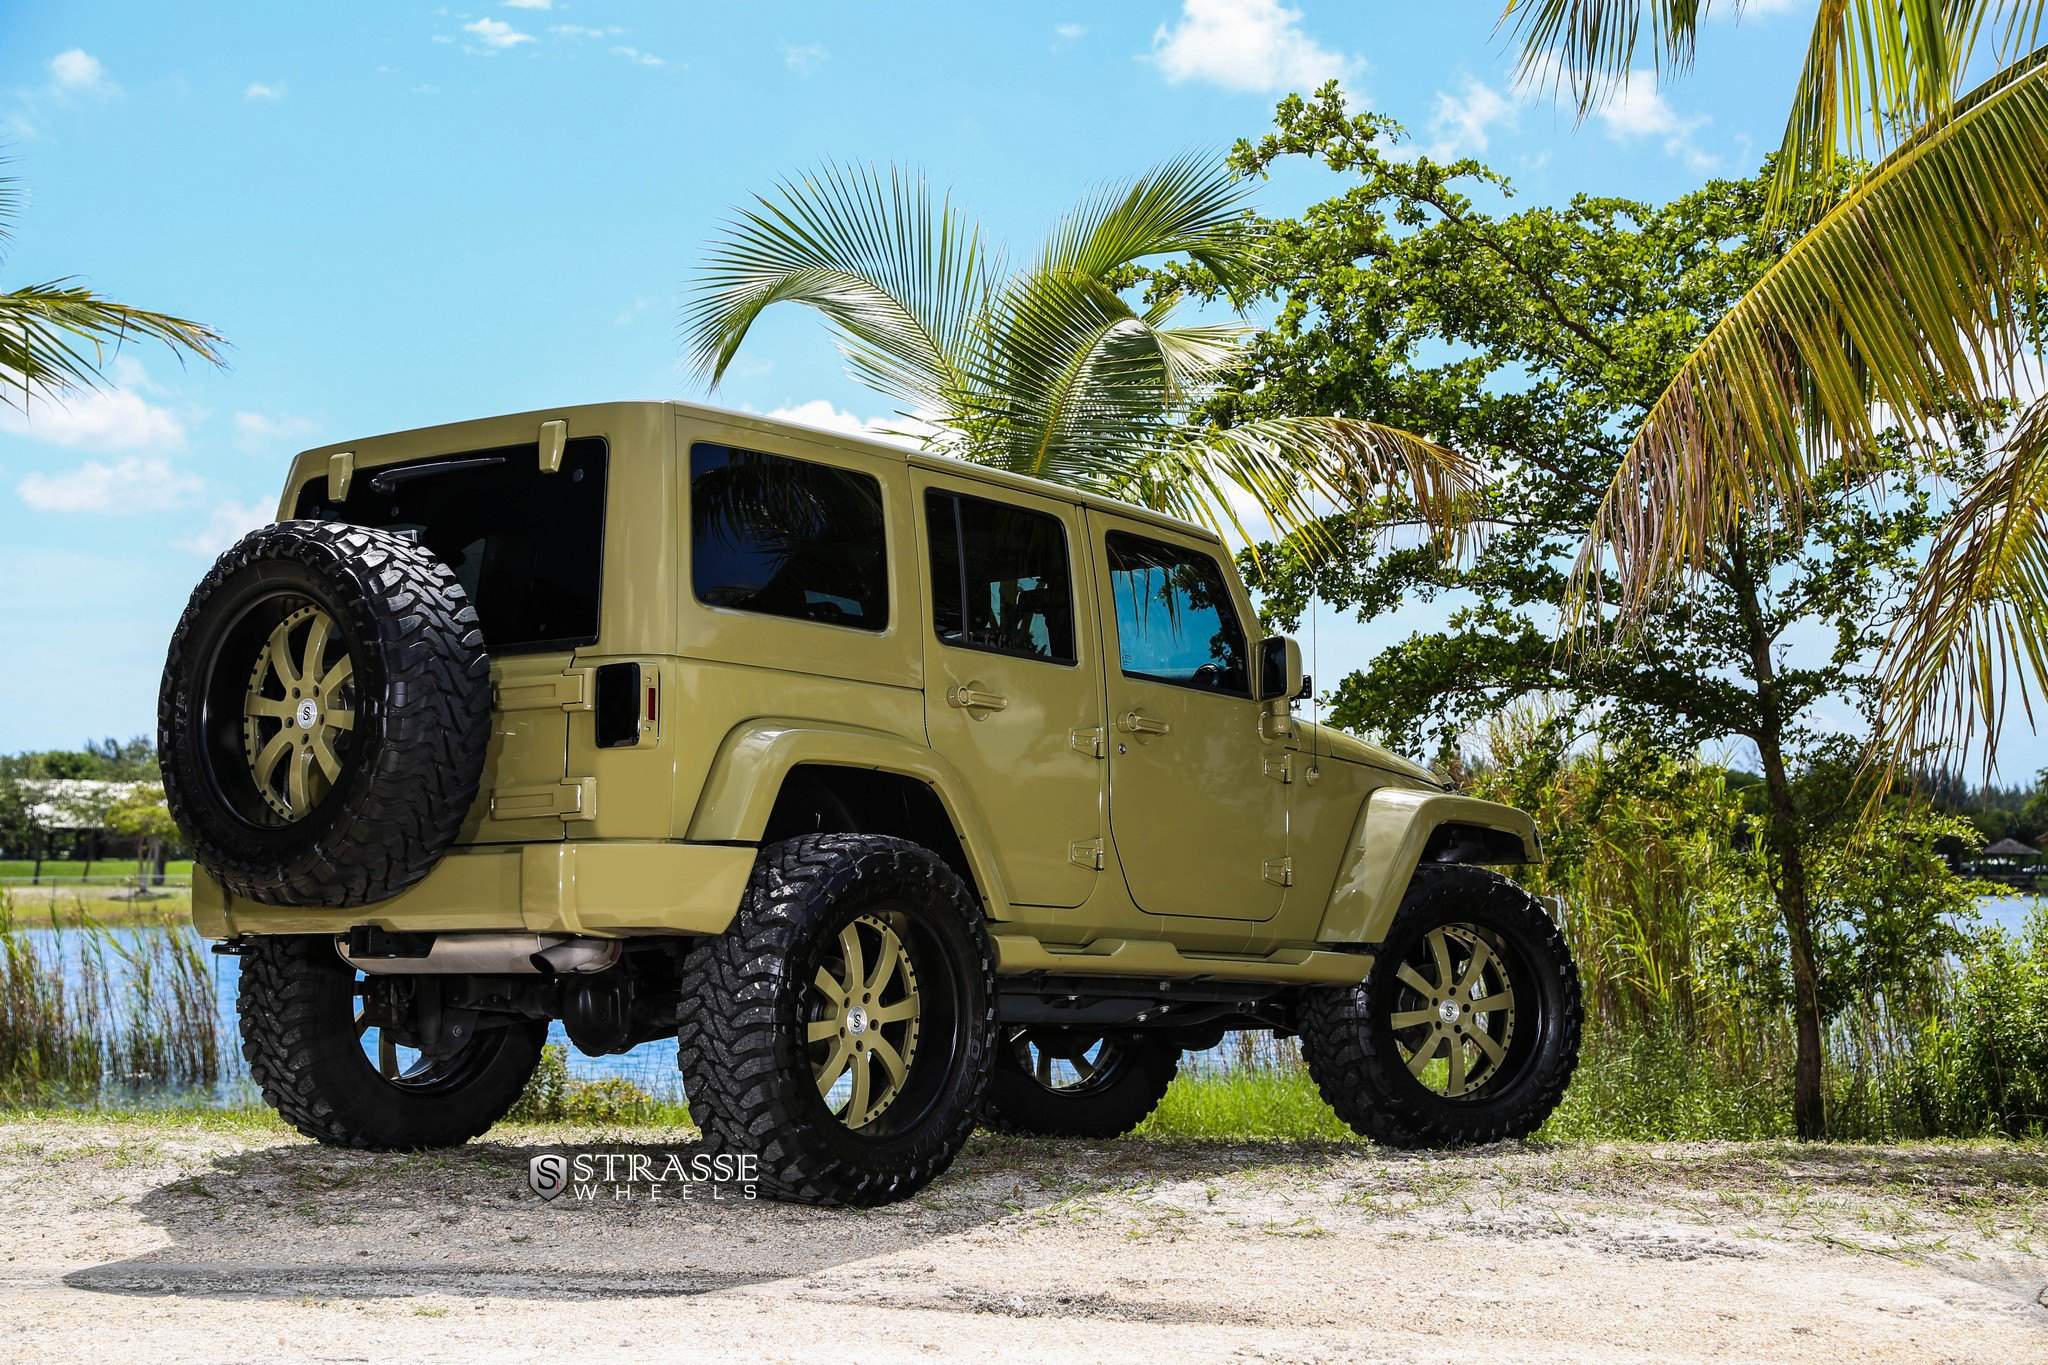 Spare Tire Kit on Khaki Jeep Wrangler - Photo by Strasse Forged